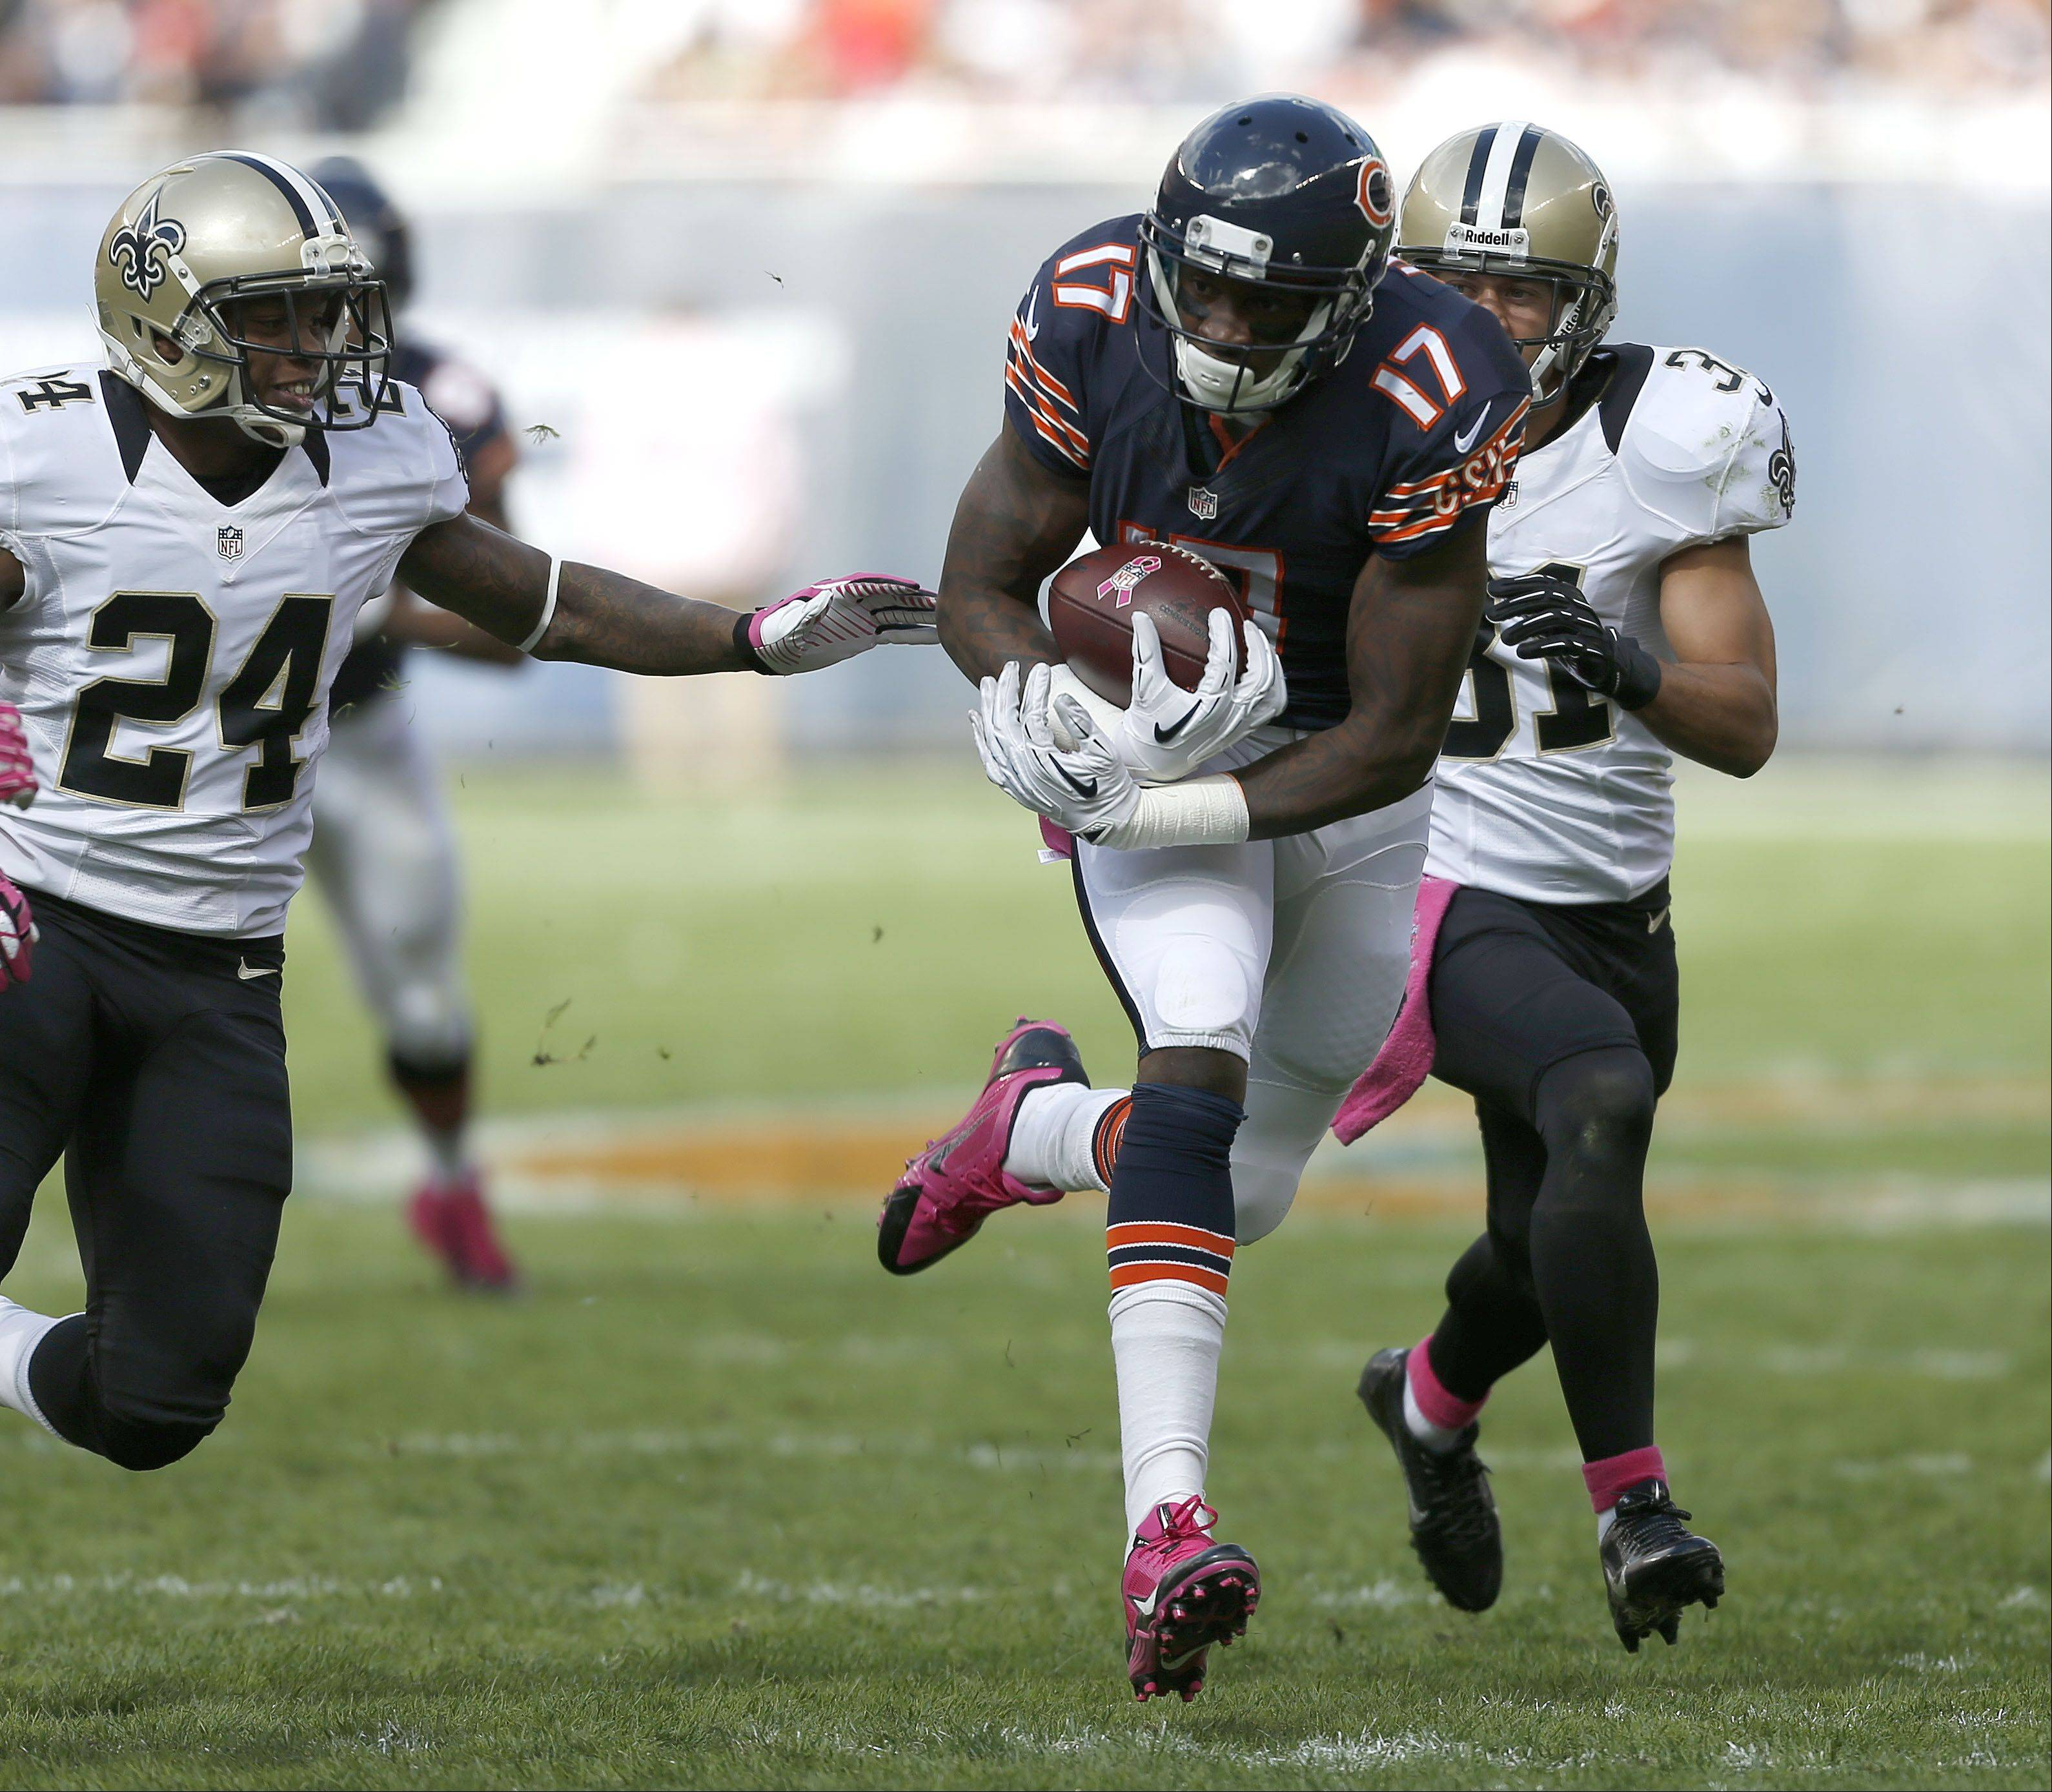 Chicago Bears wide receiver Alshon Jeffery runs after a long reception.